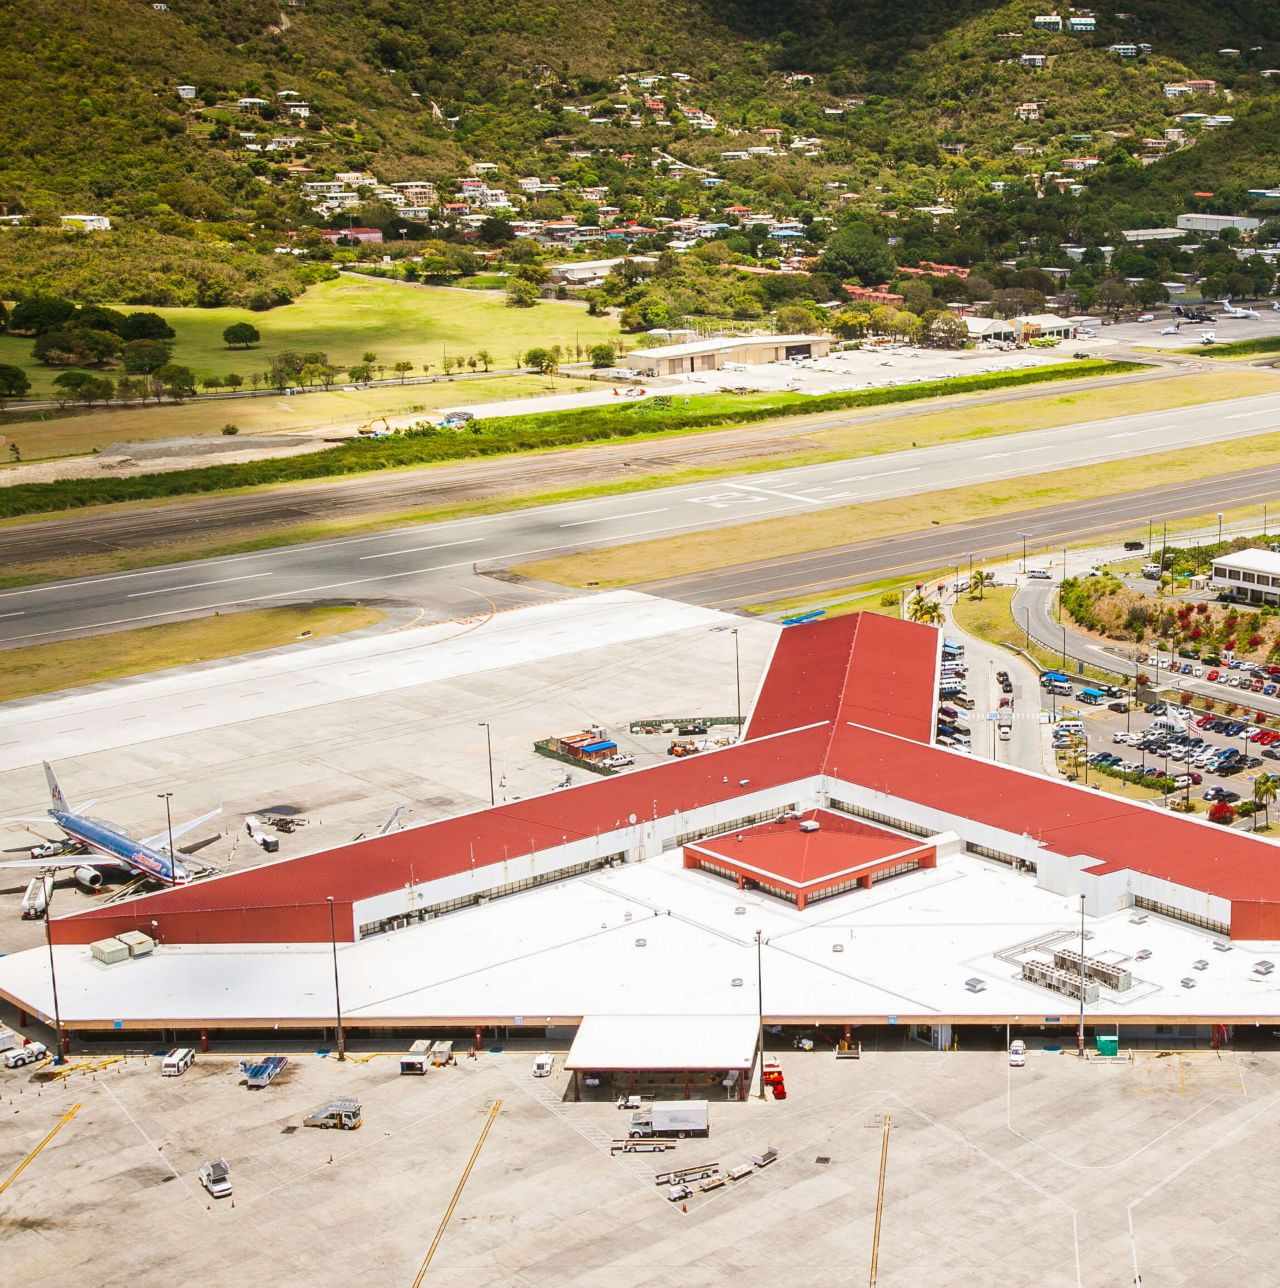 Cyril King Airport St. Thomas